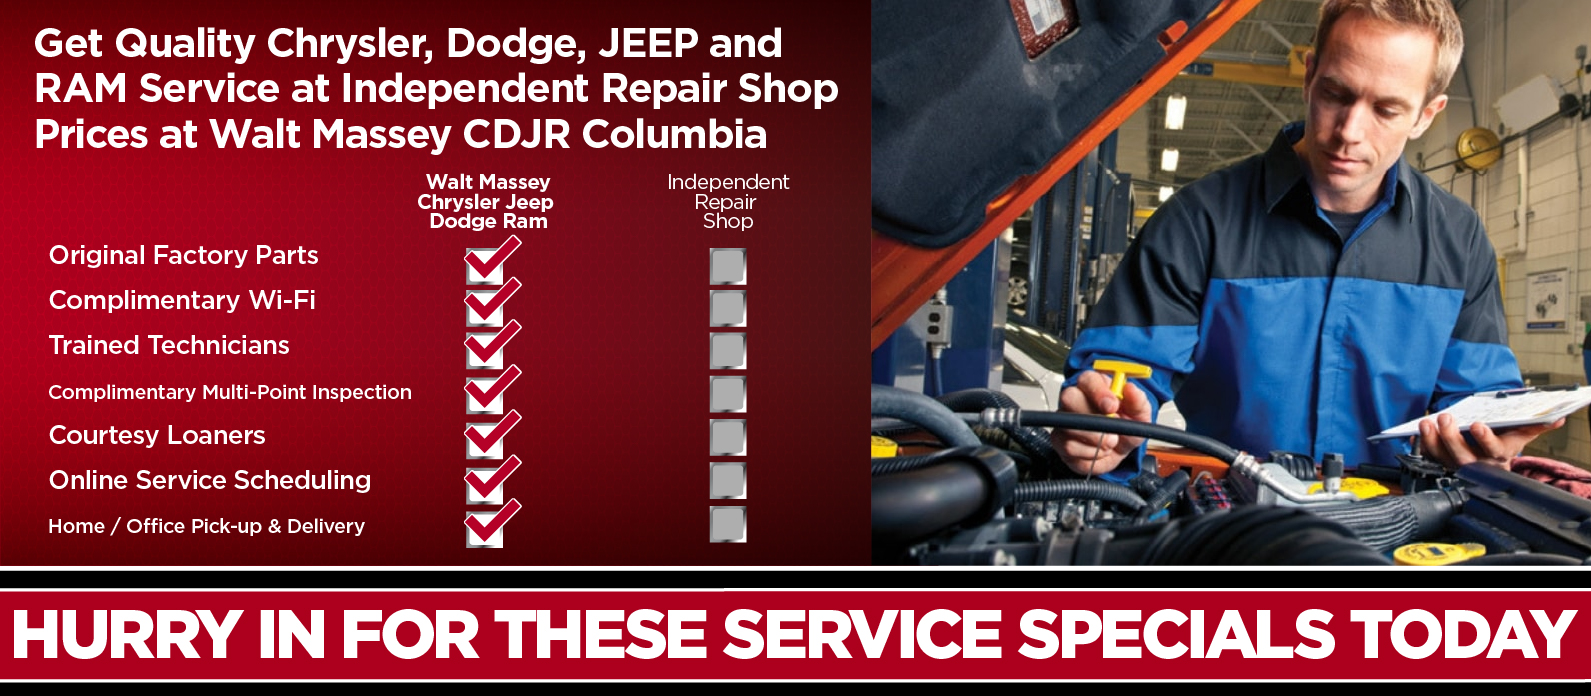 Get quality Chrysler Dodge Jeep Ram Columbia Service at Independent Repair Shop Prices at Walt Massey CDJR